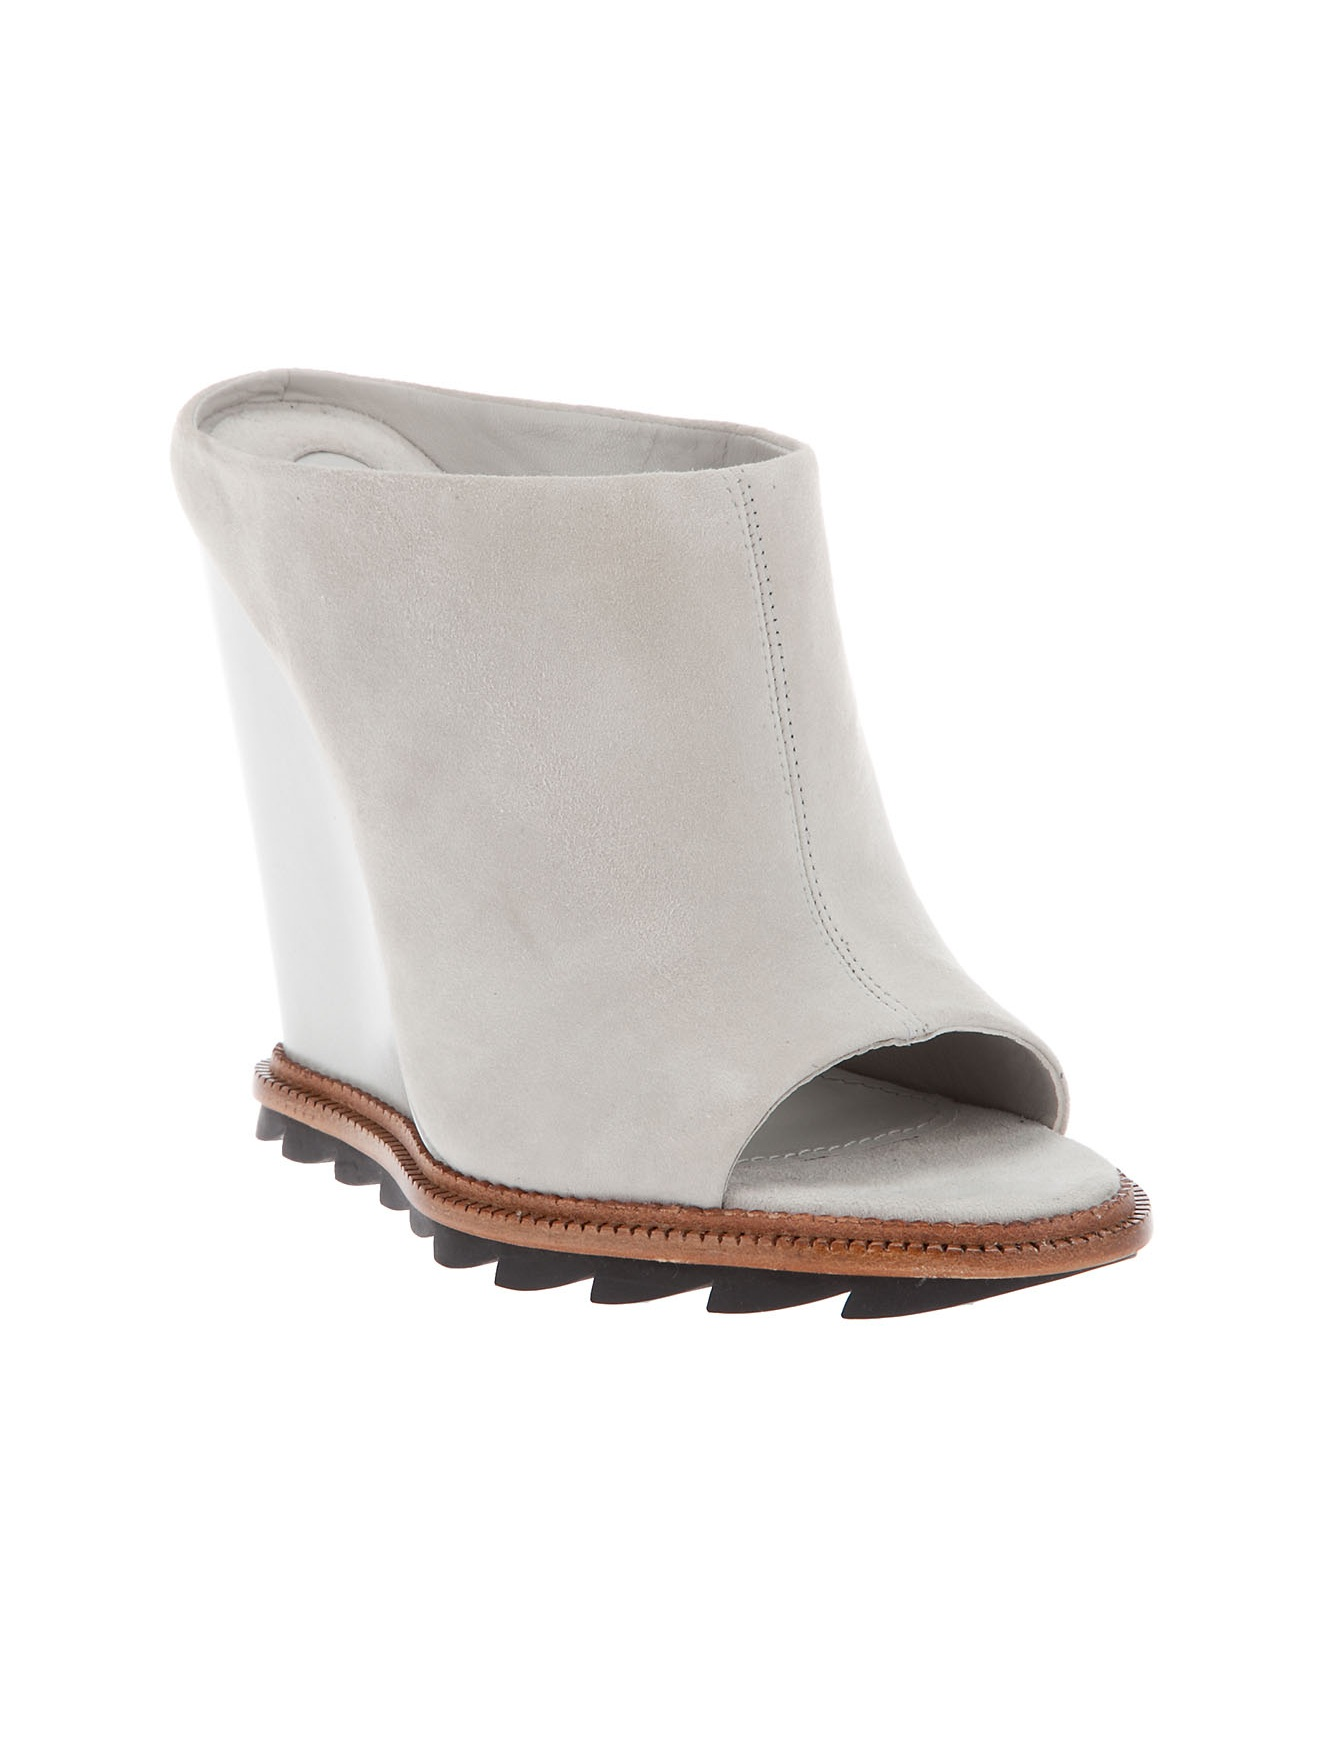 Camilla Skovgaard Wedge Mule In White Ash Lyst